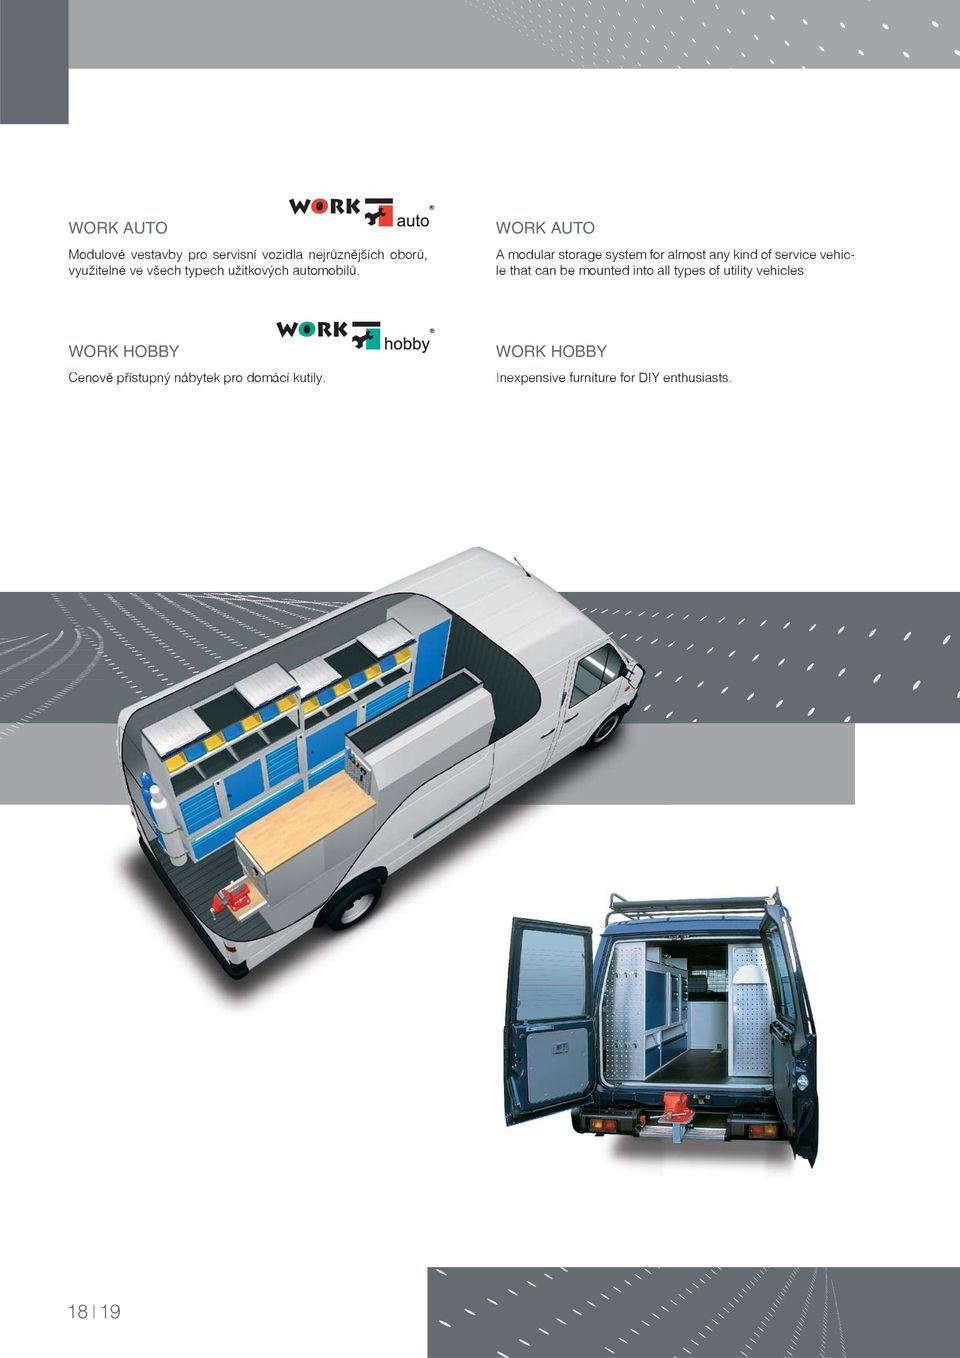 WORK AUTO A modular storage system for almost any kind of service vehicle that can be